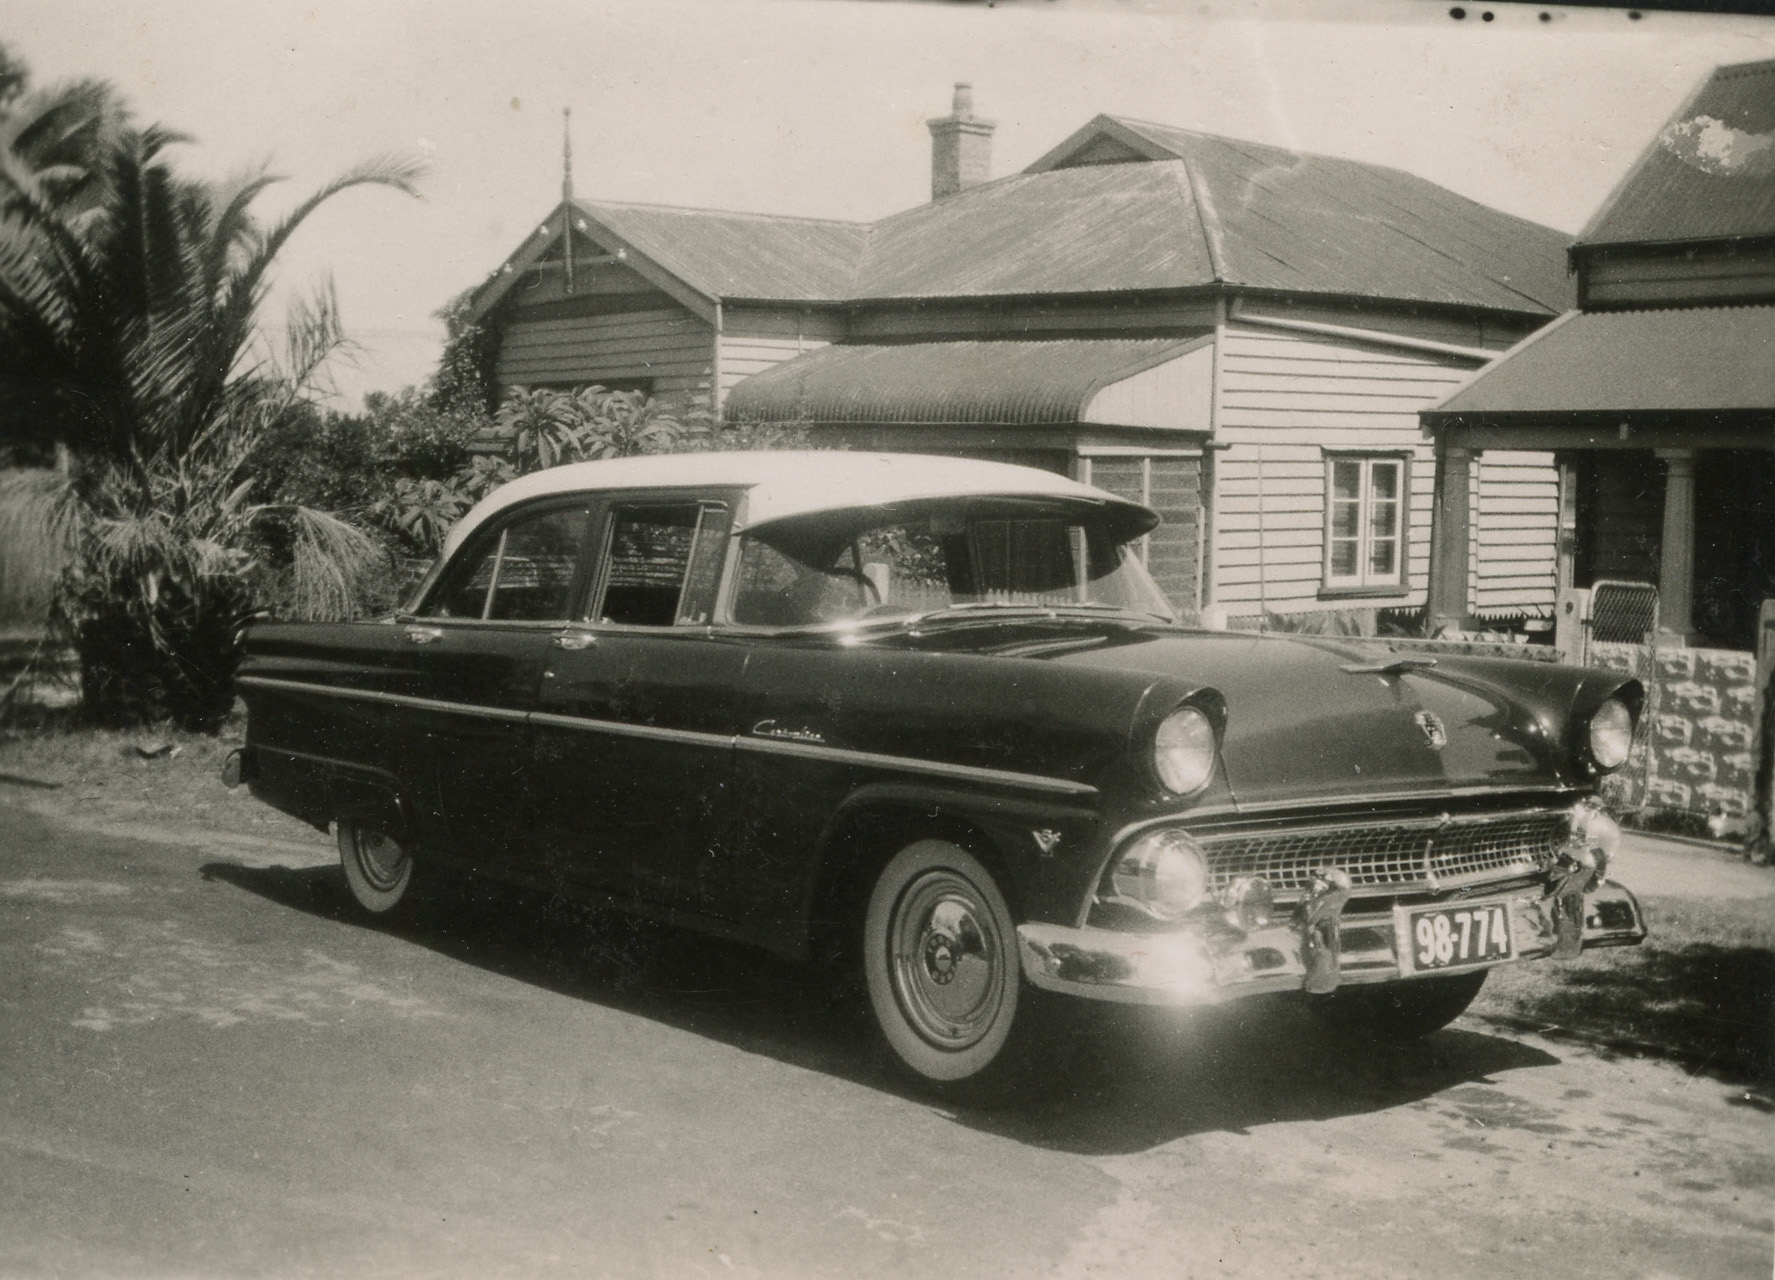 26. Ford on Peach St, 1950s